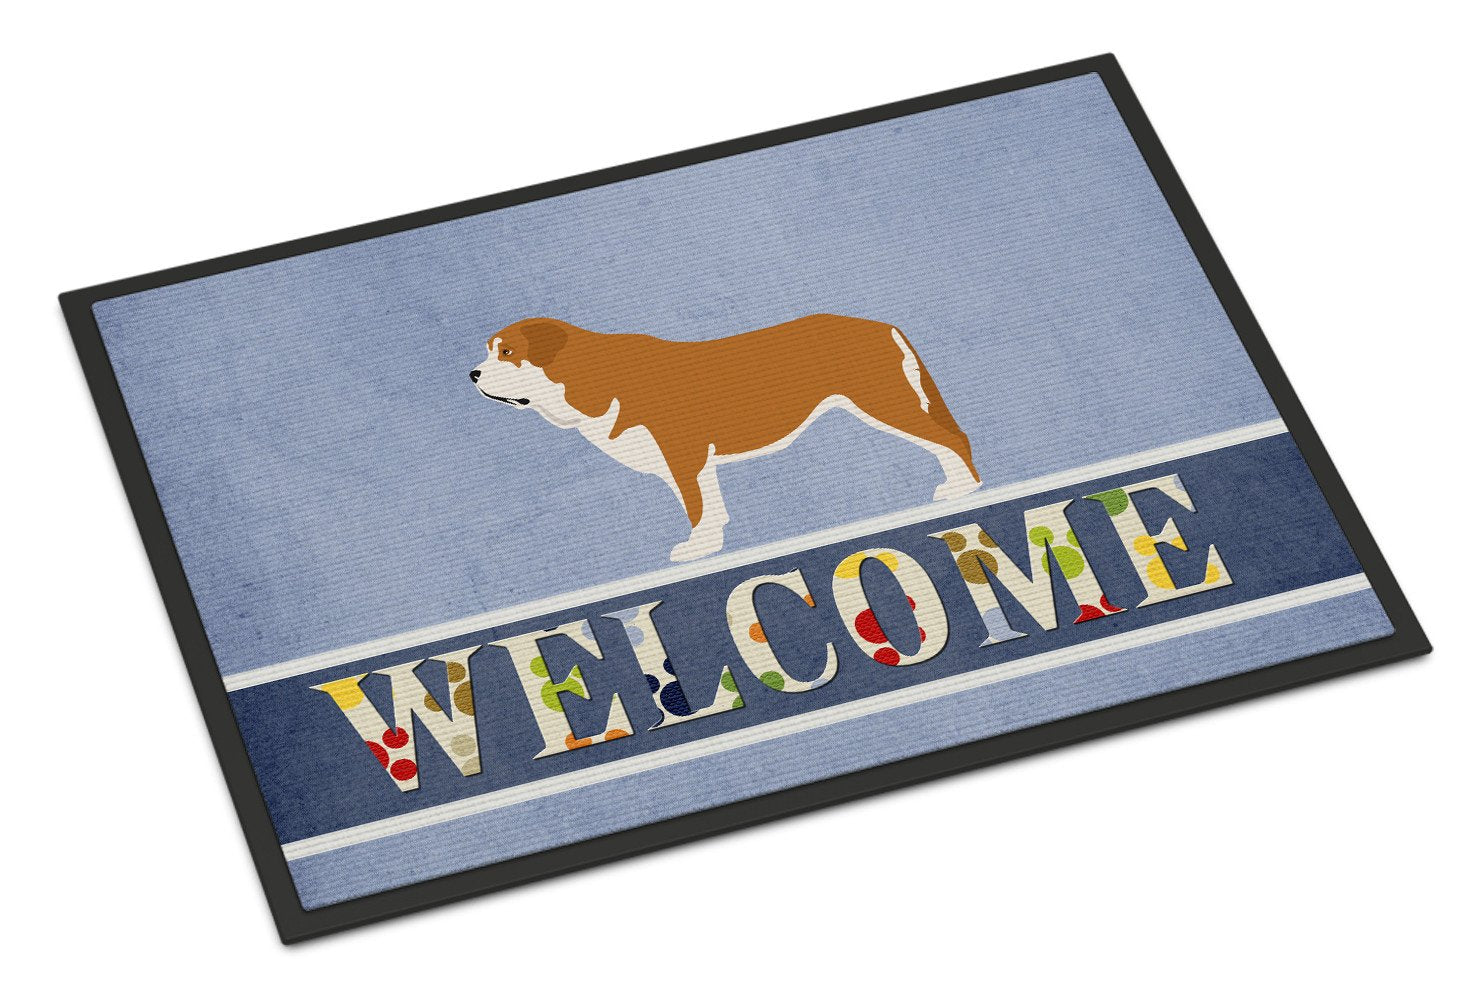 Mastin Epanol Spanish Mastiff Indoor or Outdoor Mat 24x36 BB8349JMAT by Caroline's Treasures